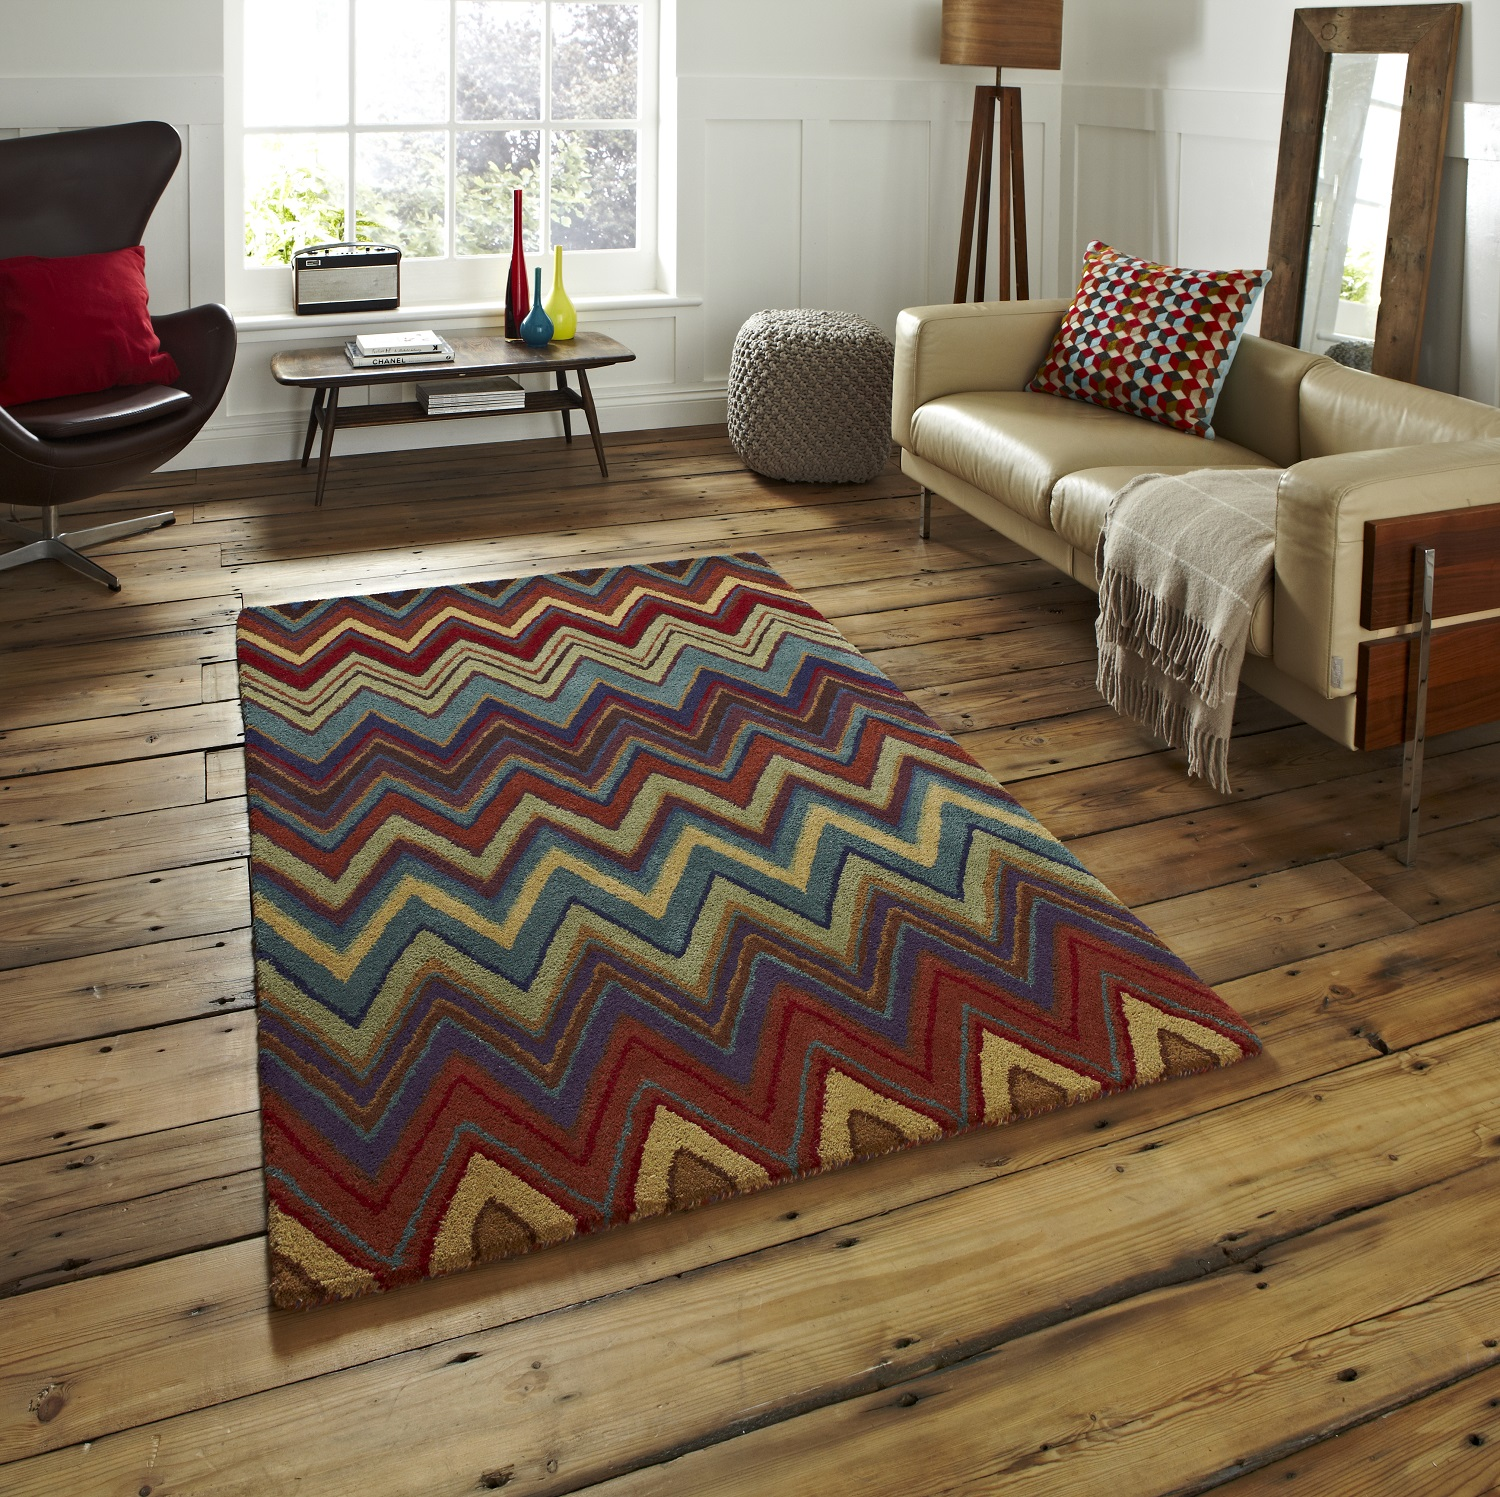 100 wool aztec rug hand tufted zigzag pattern heavyweight luxury mat home decor ebay - Rugs and home decor decor ...